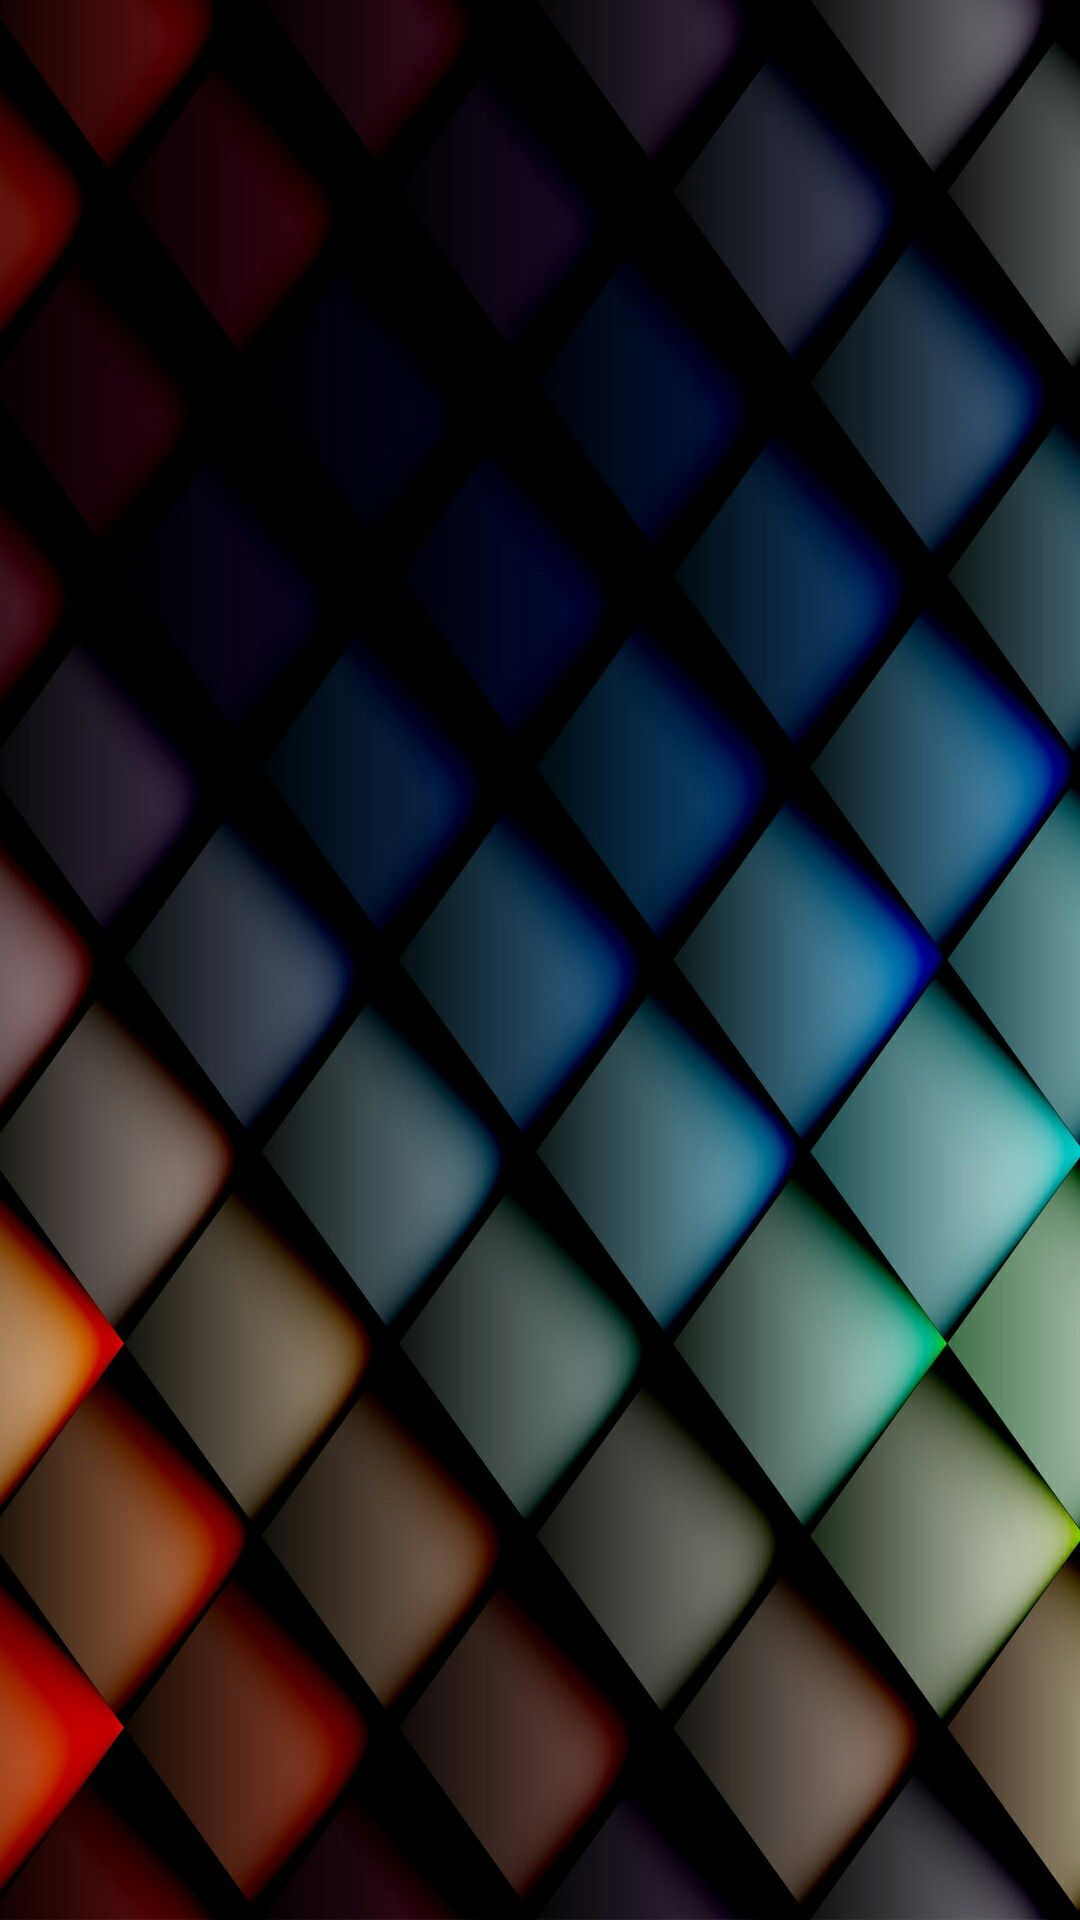 Colorful 3D Wallpaper   *Abstract and Geometric Wallpapers   Mobile wallpaper,roid, Iphone ...